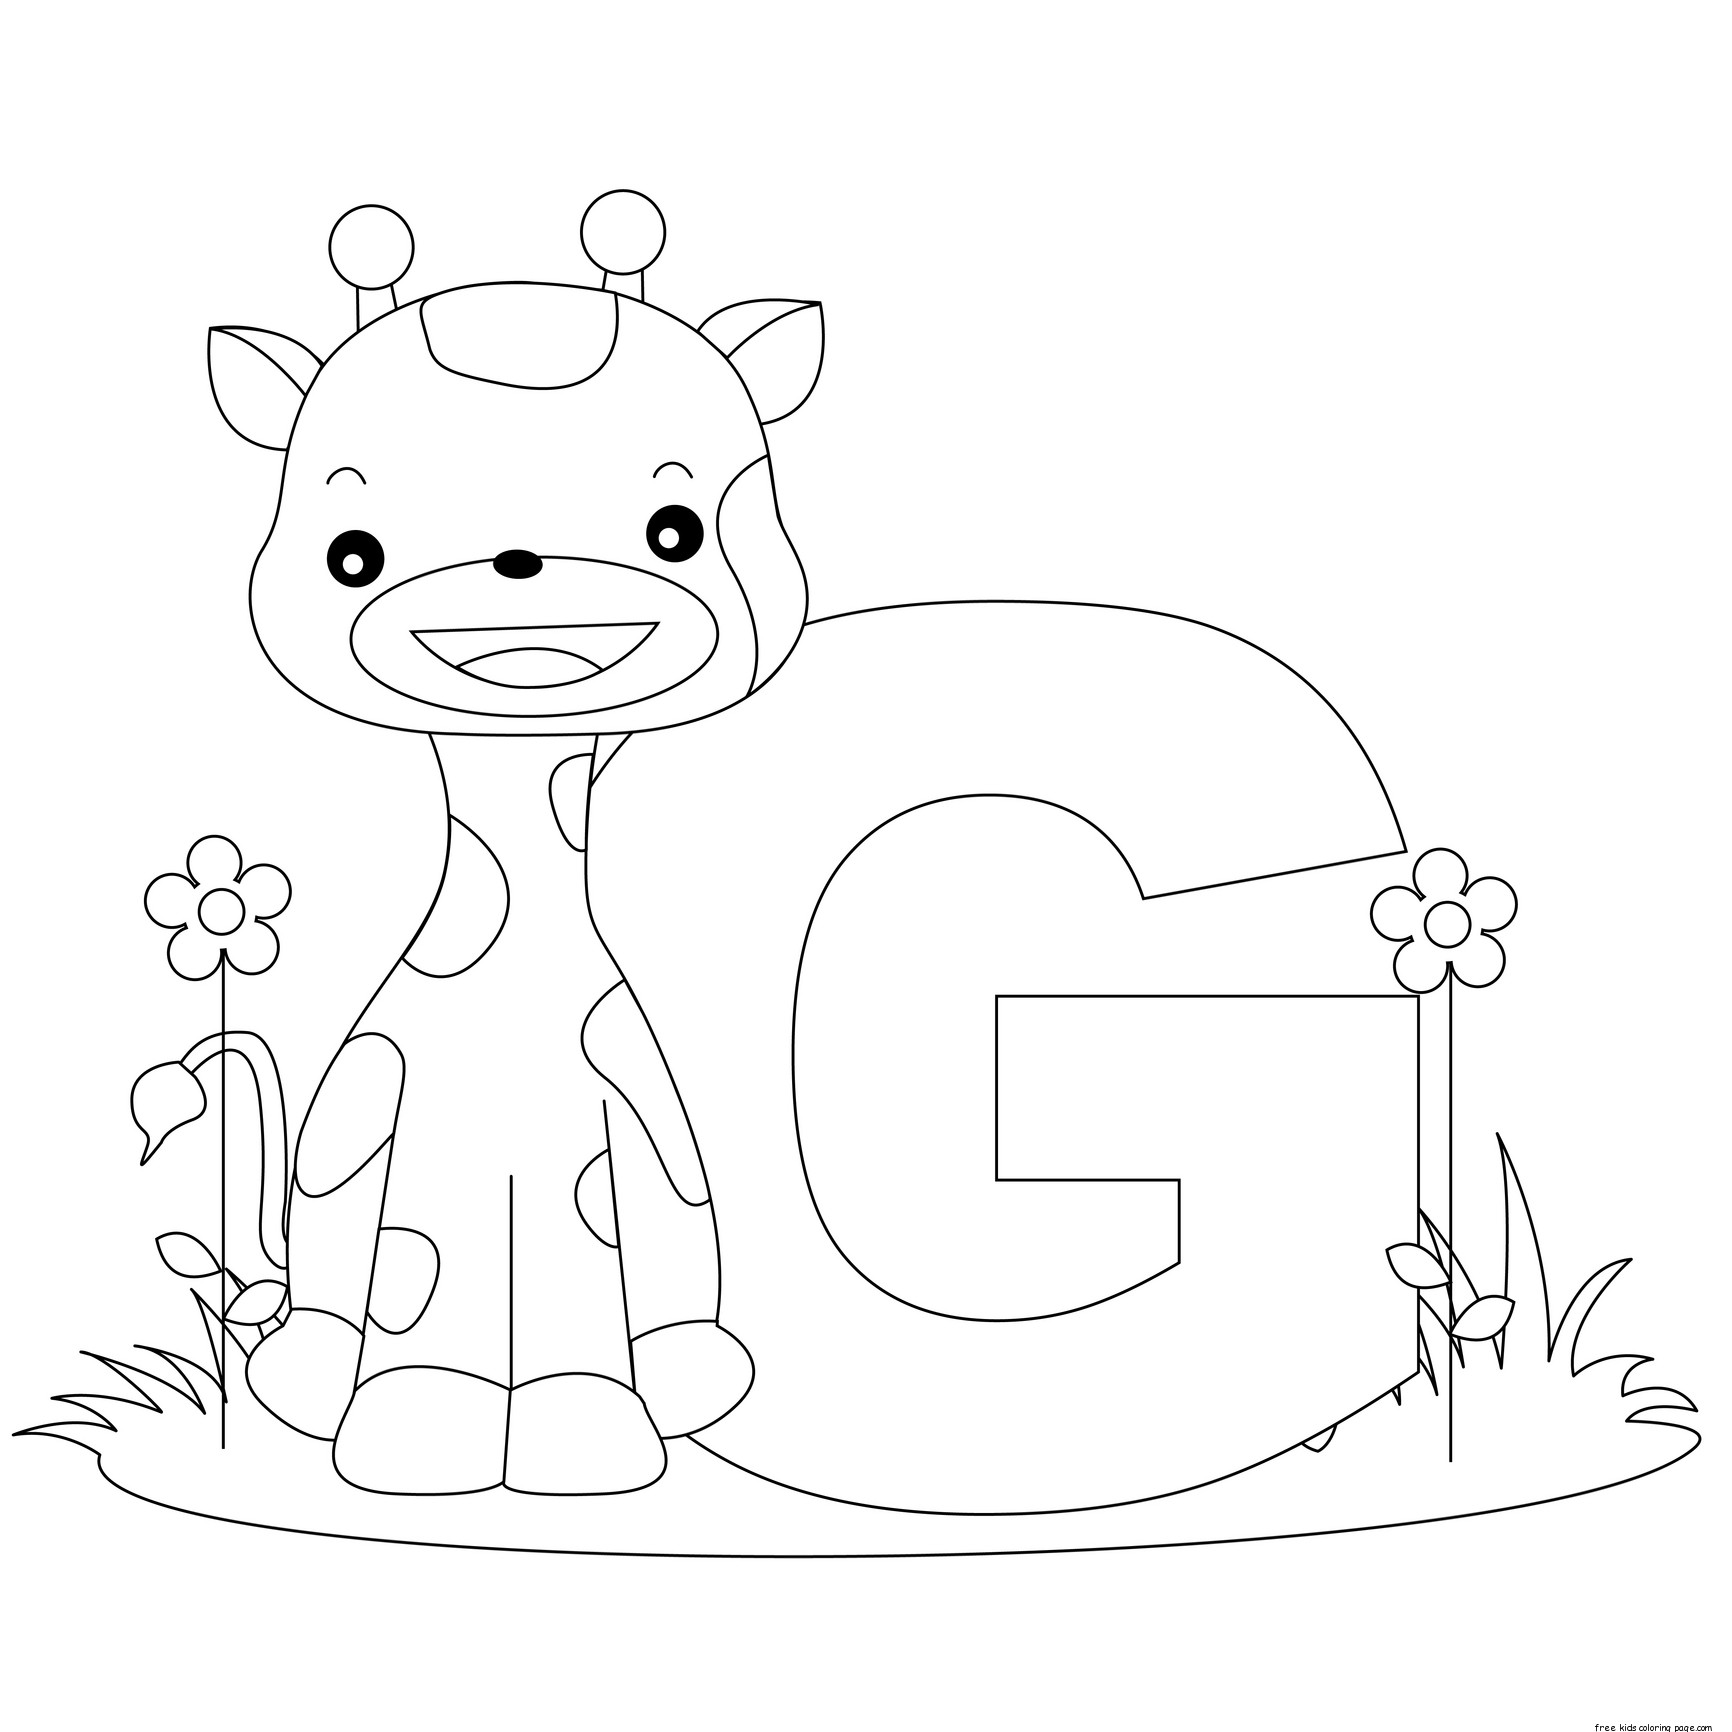 Alphabet letter g for preschool